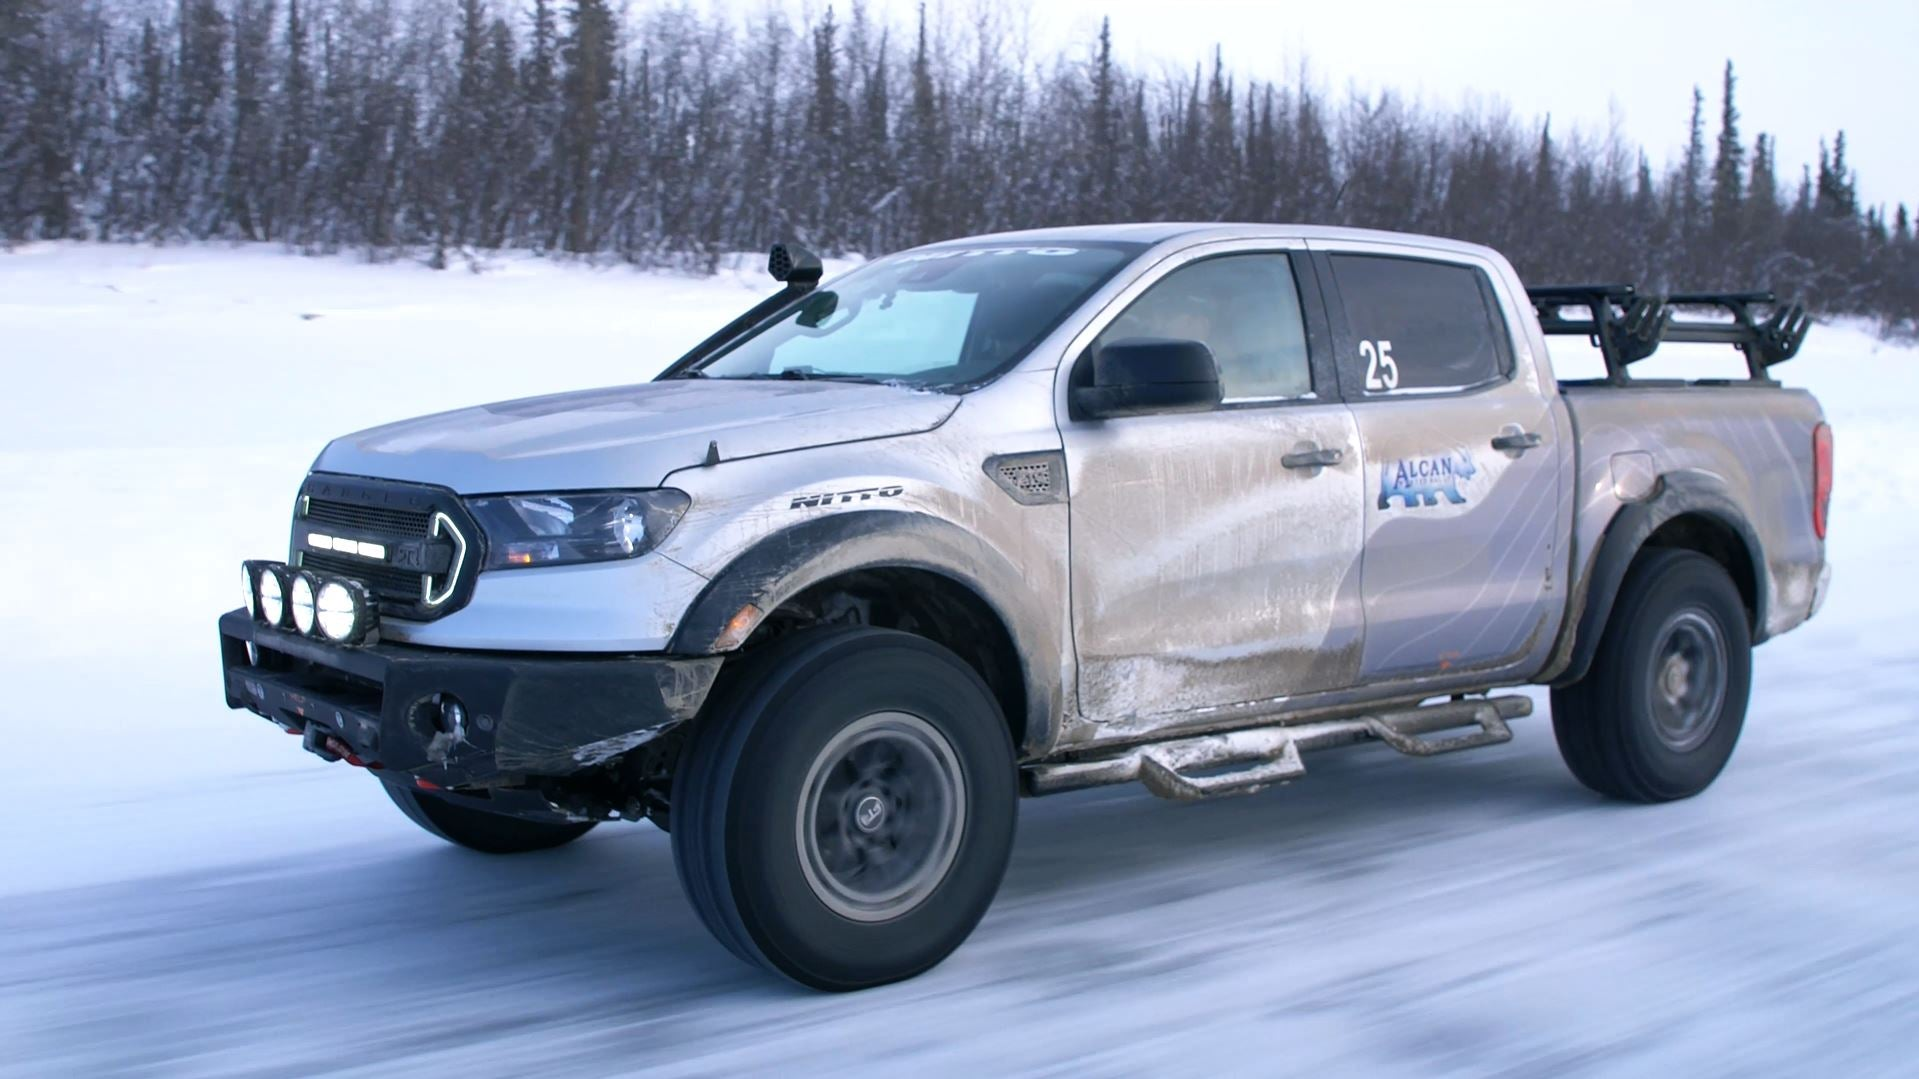 RTR Ranger Rambler Takes On Alcan 5000